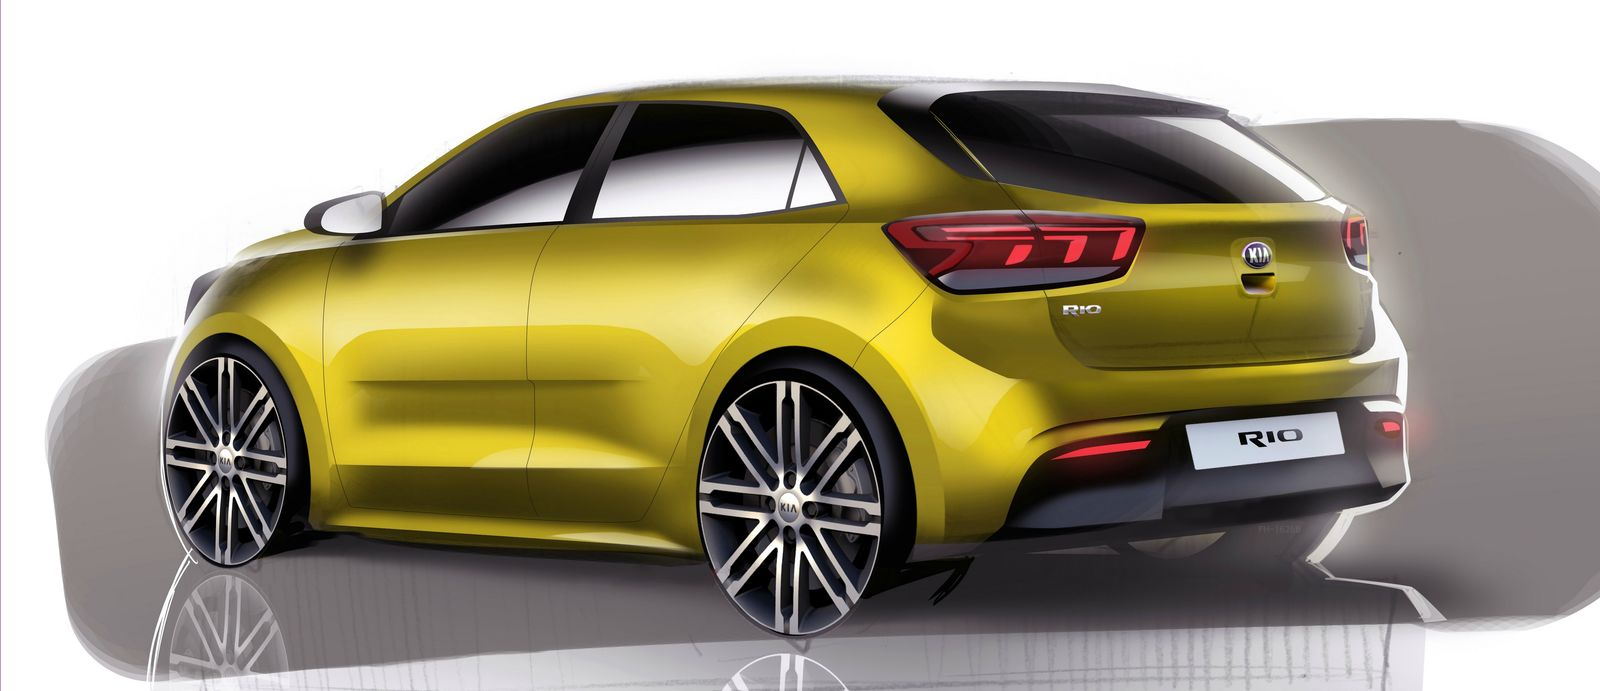 2017 kia rio price specs and release date carwow. Black Bedroom Furniture Sets. Home Design Ideas